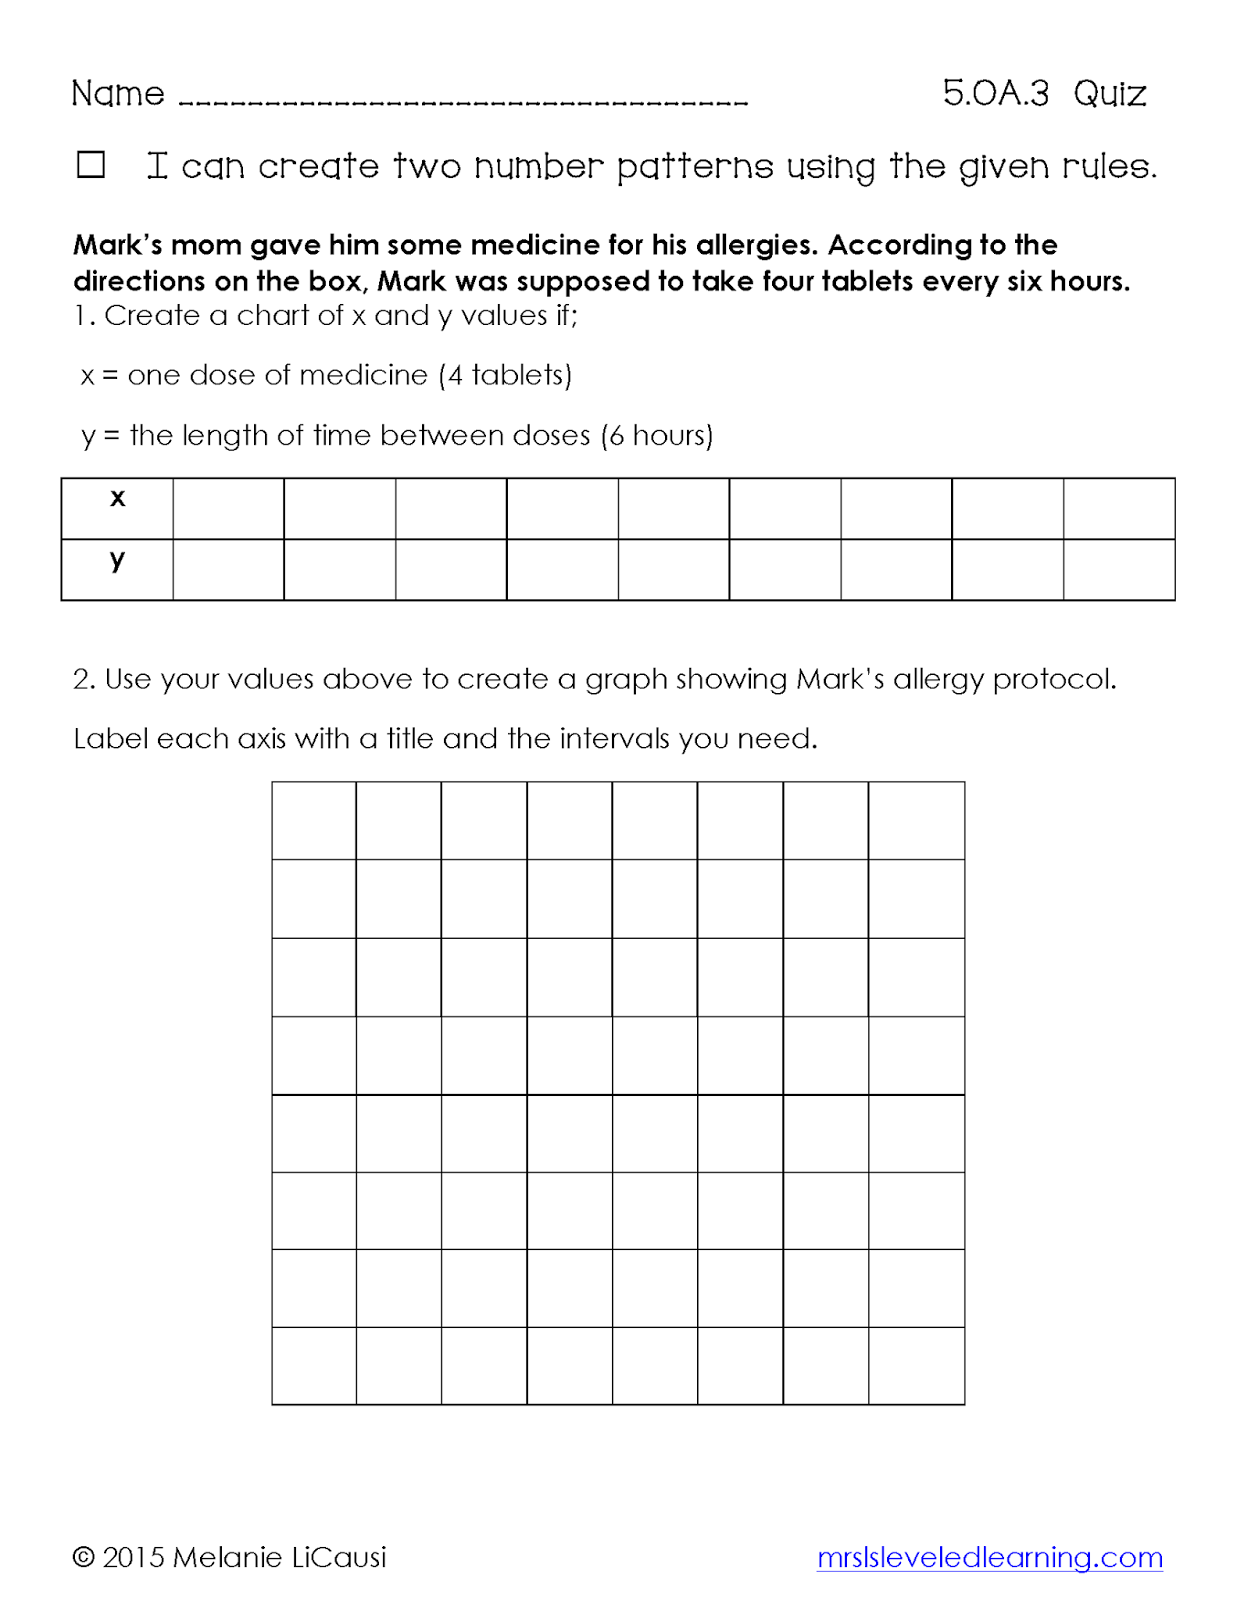 5th Grade Common Core Math Quizzes For Free